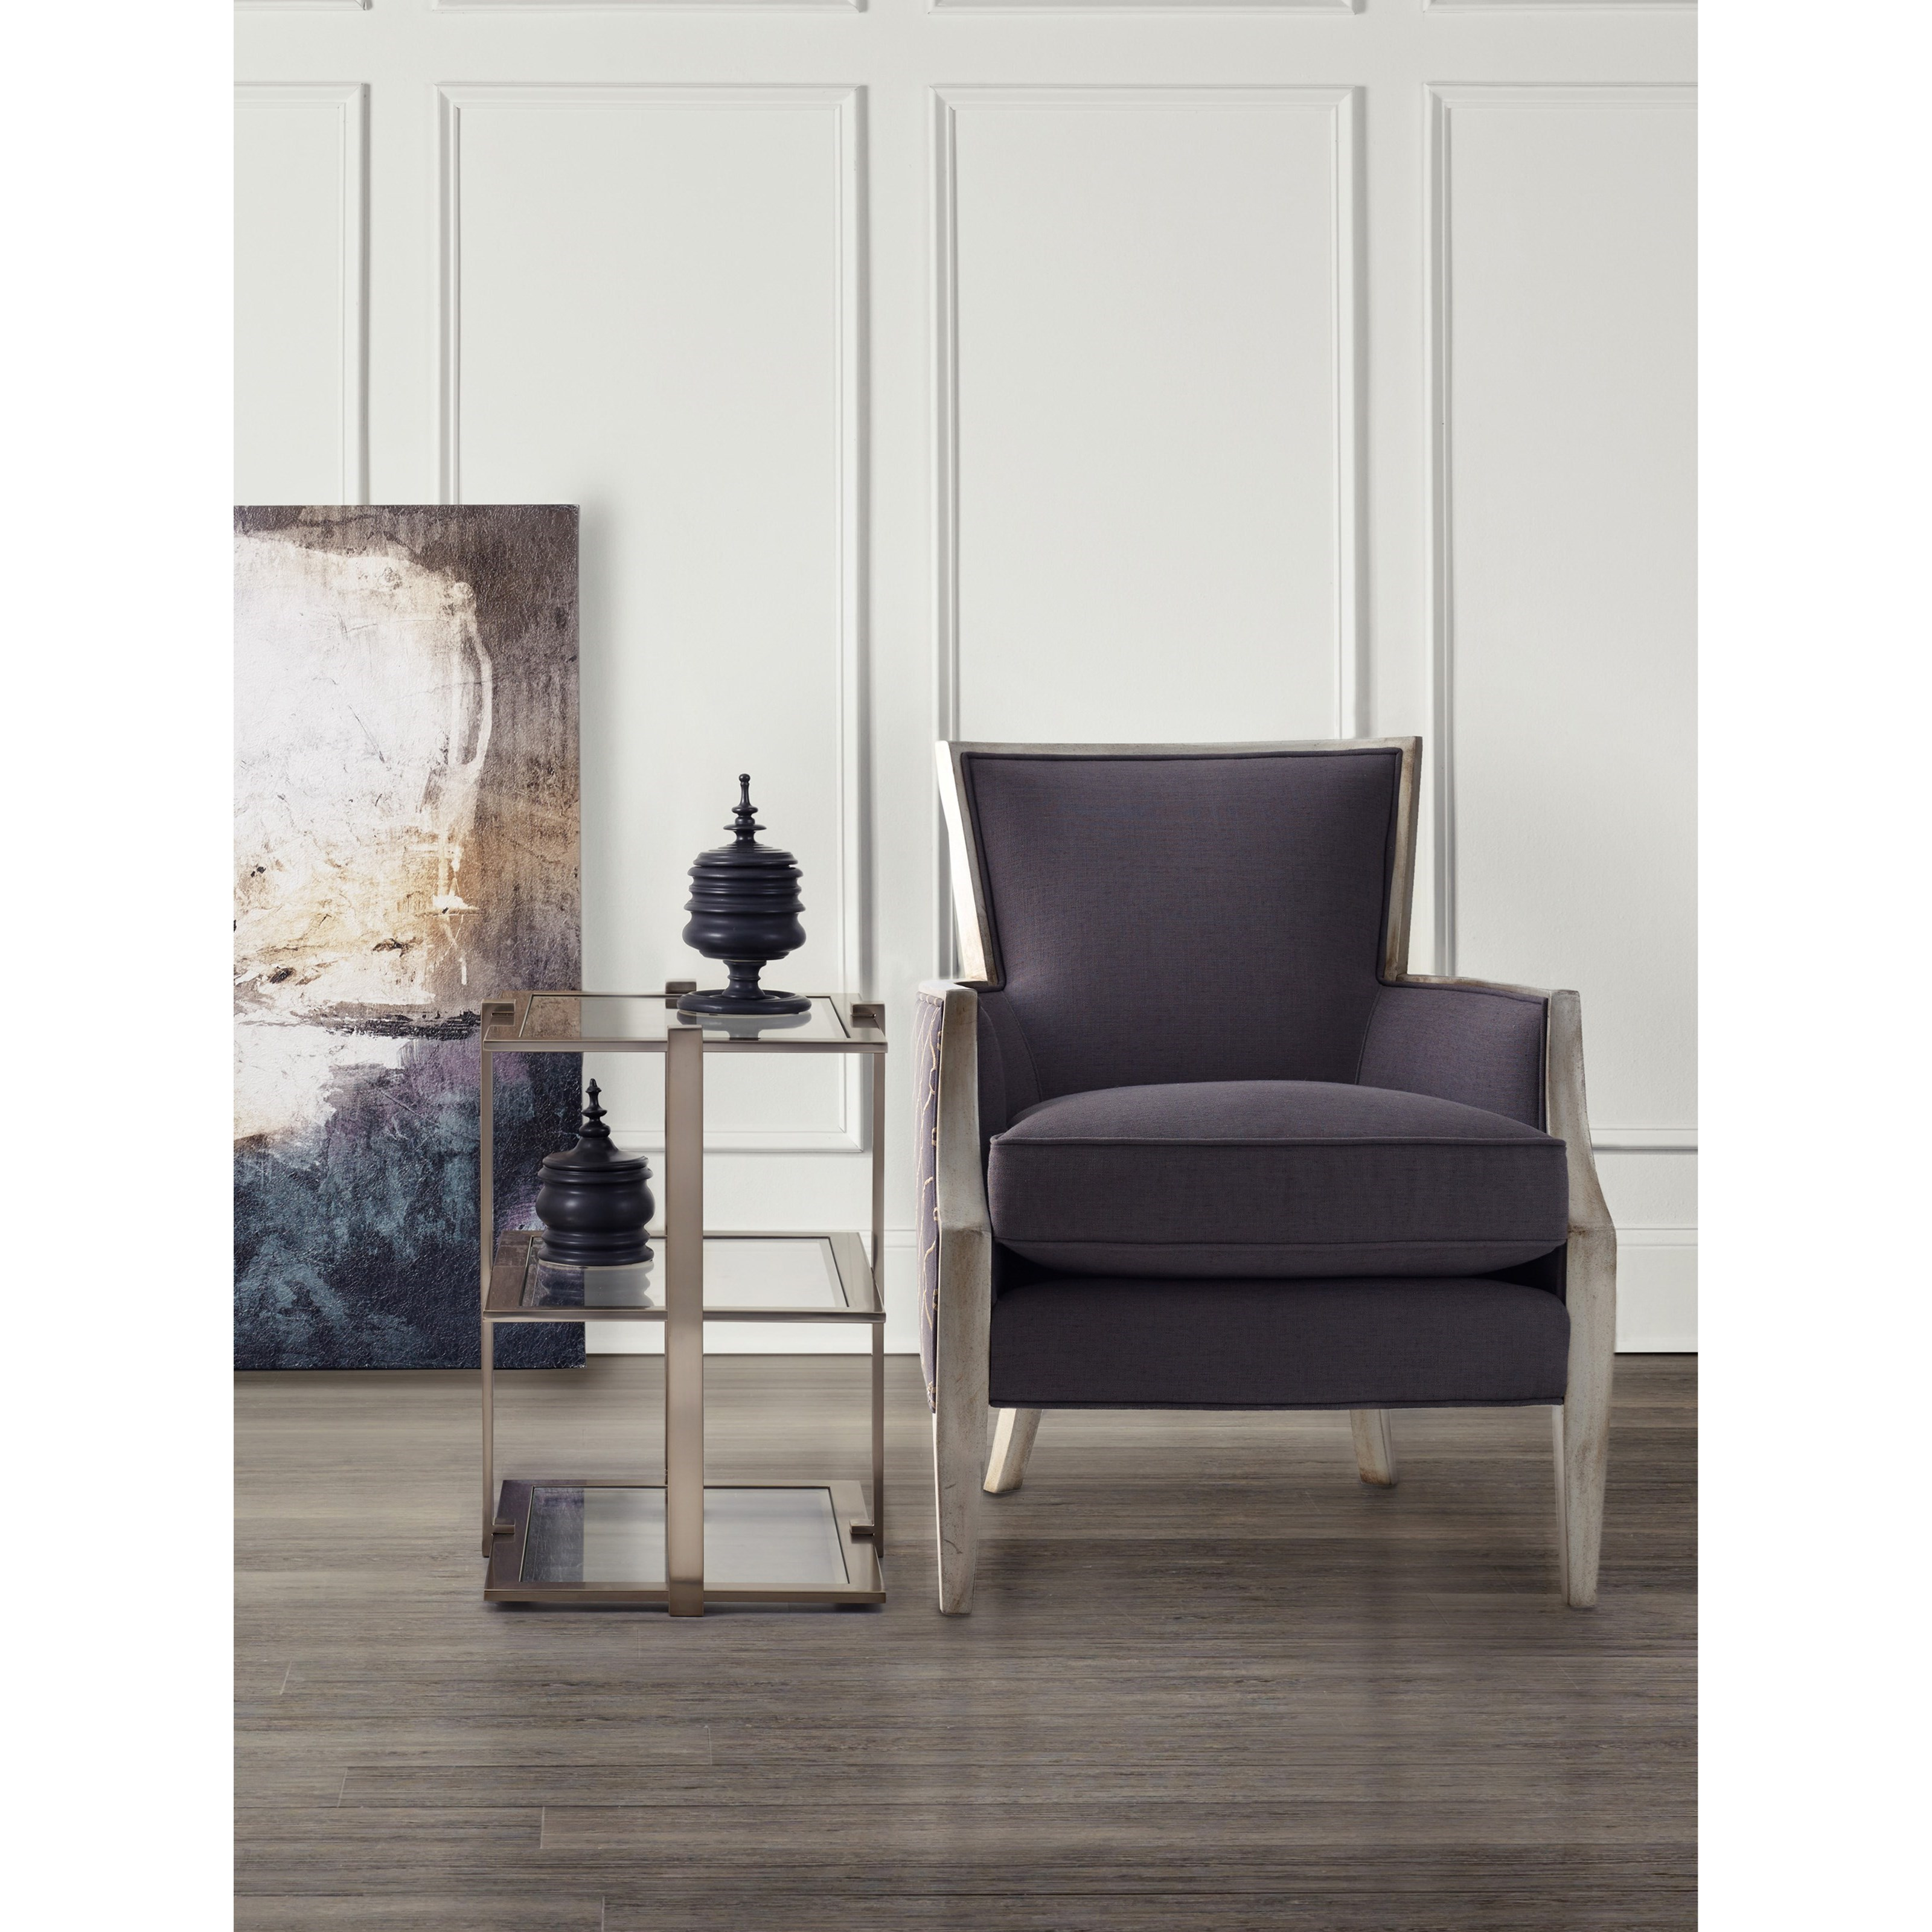 accent table with glass shelves ekenasfiber johnhenriksson se u2022 rh ekenasfiber johnhenriksson se